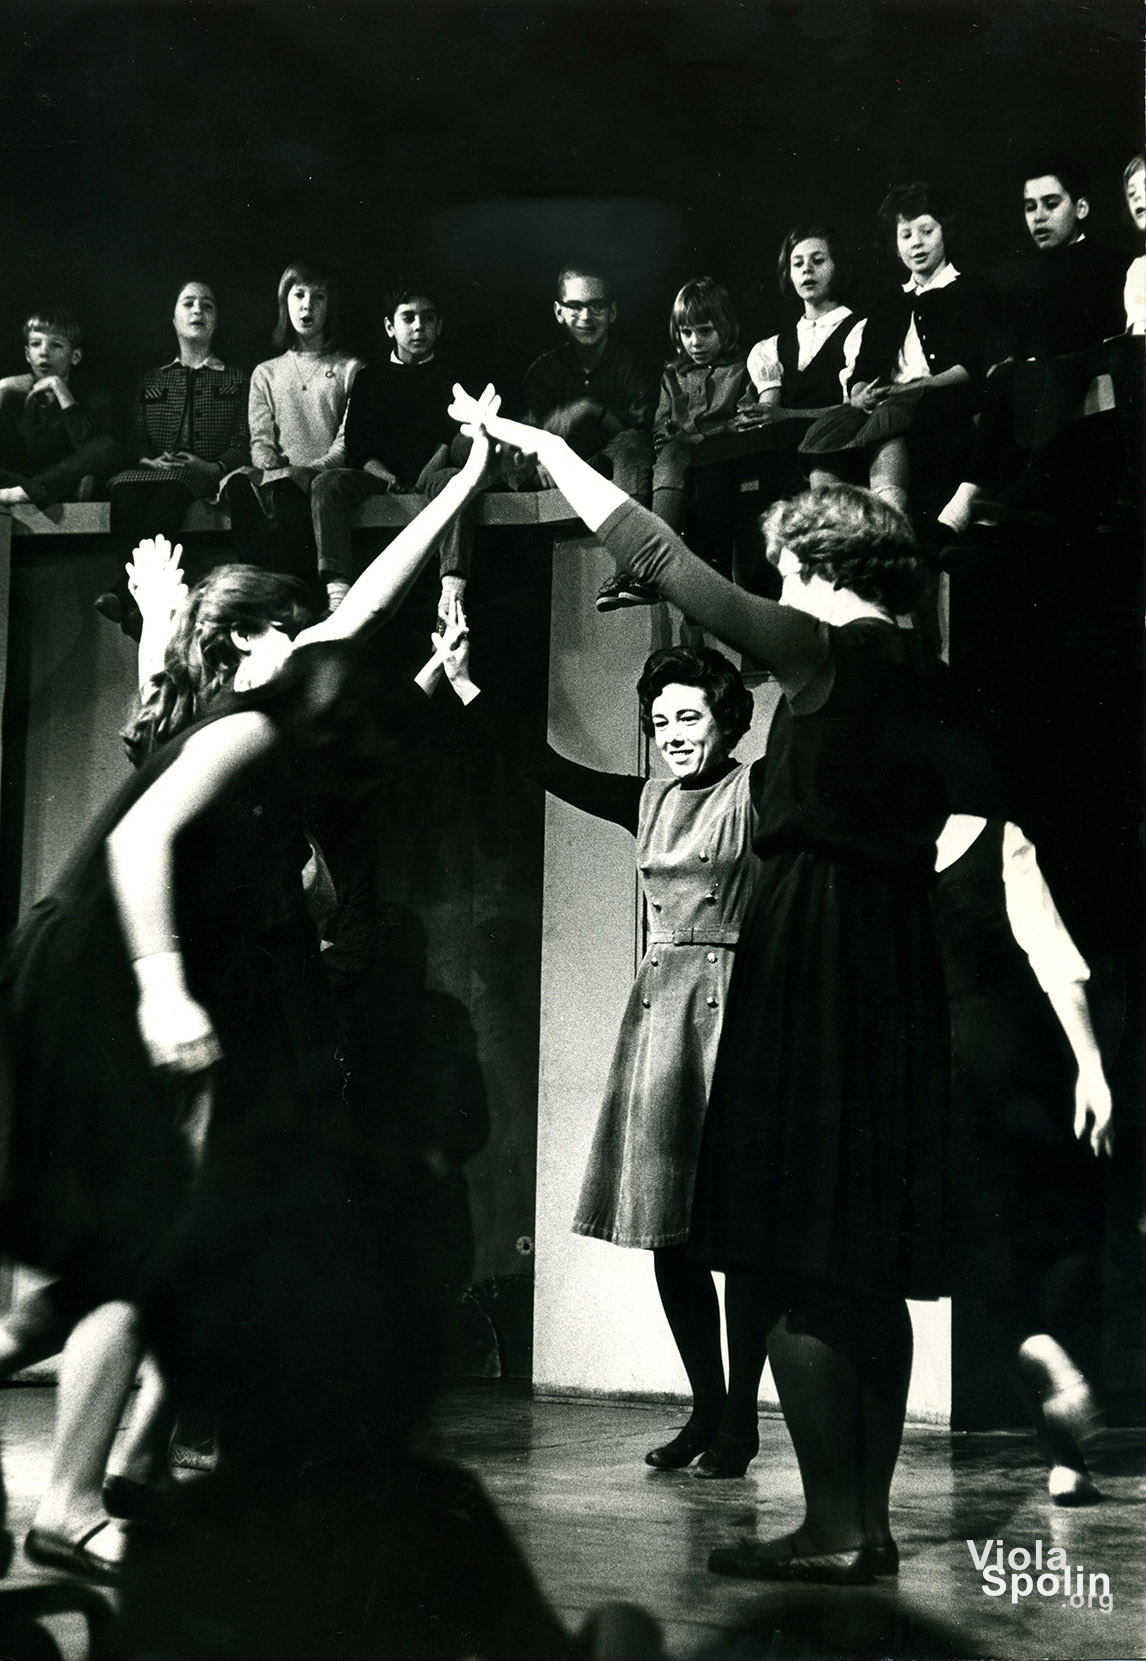 Viola Spolin's Students at Second City